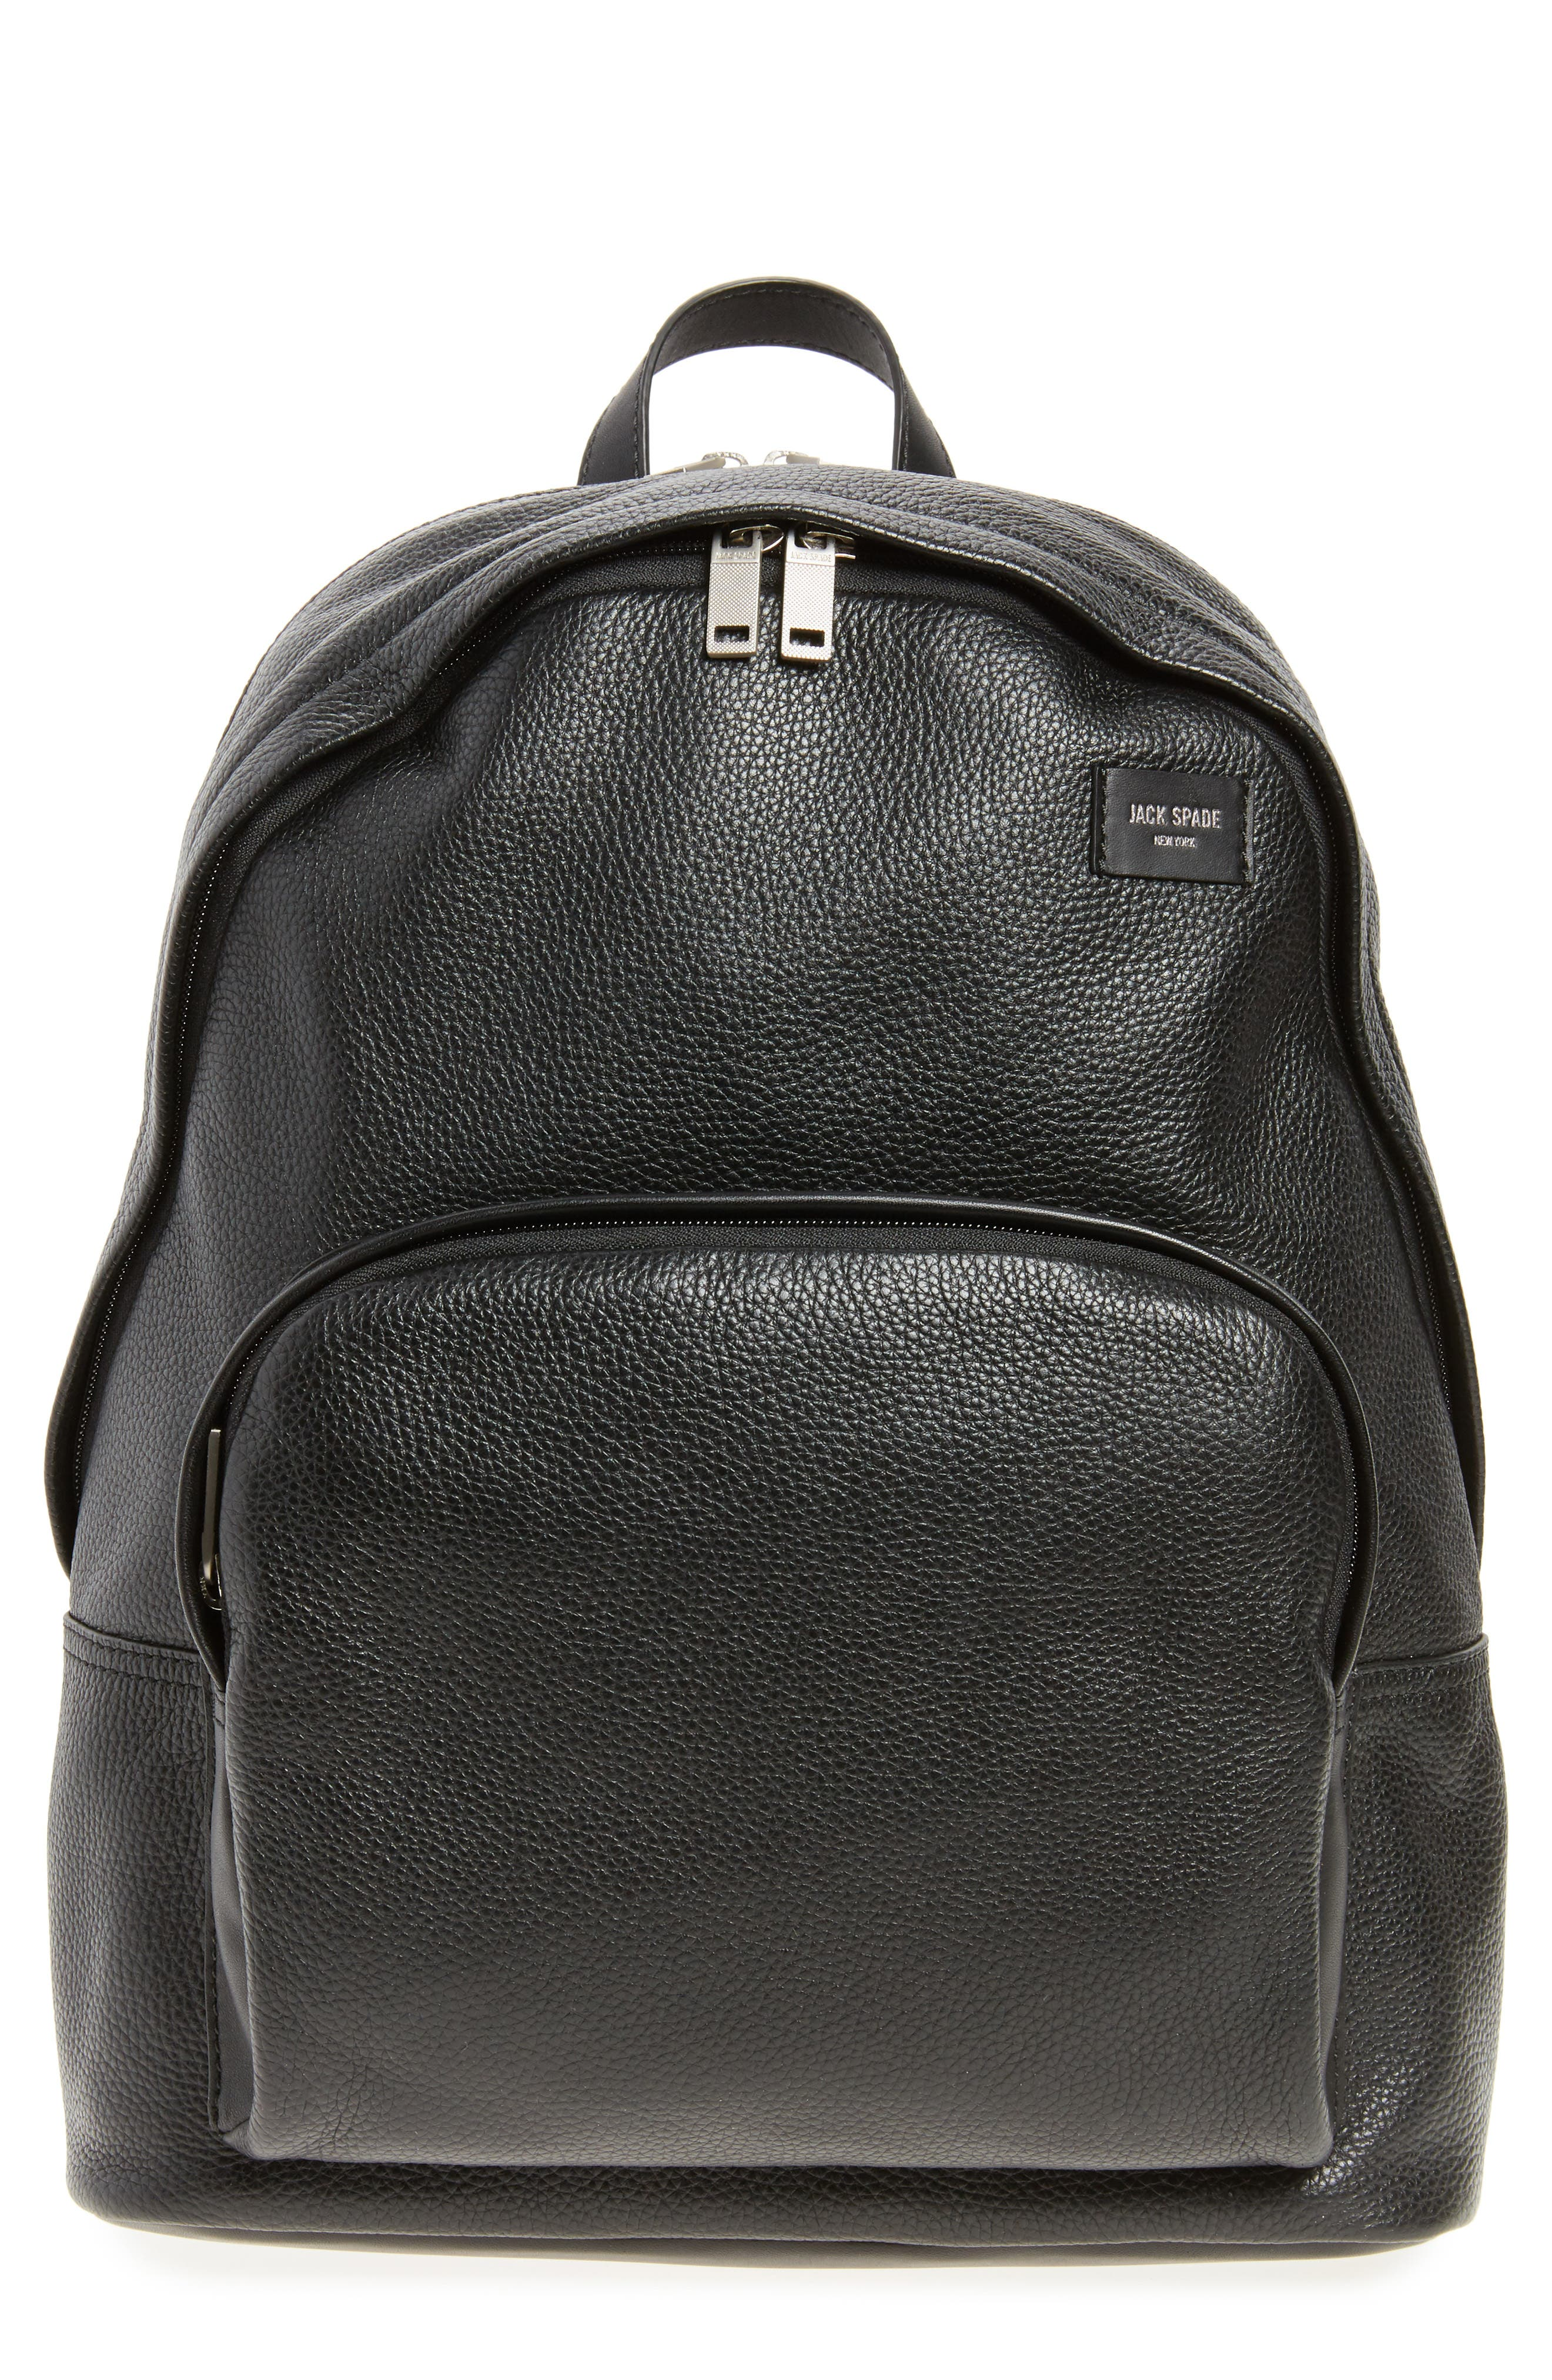 Pebbled Leather Backpack,                             Main thumbnail 1, color,                             001